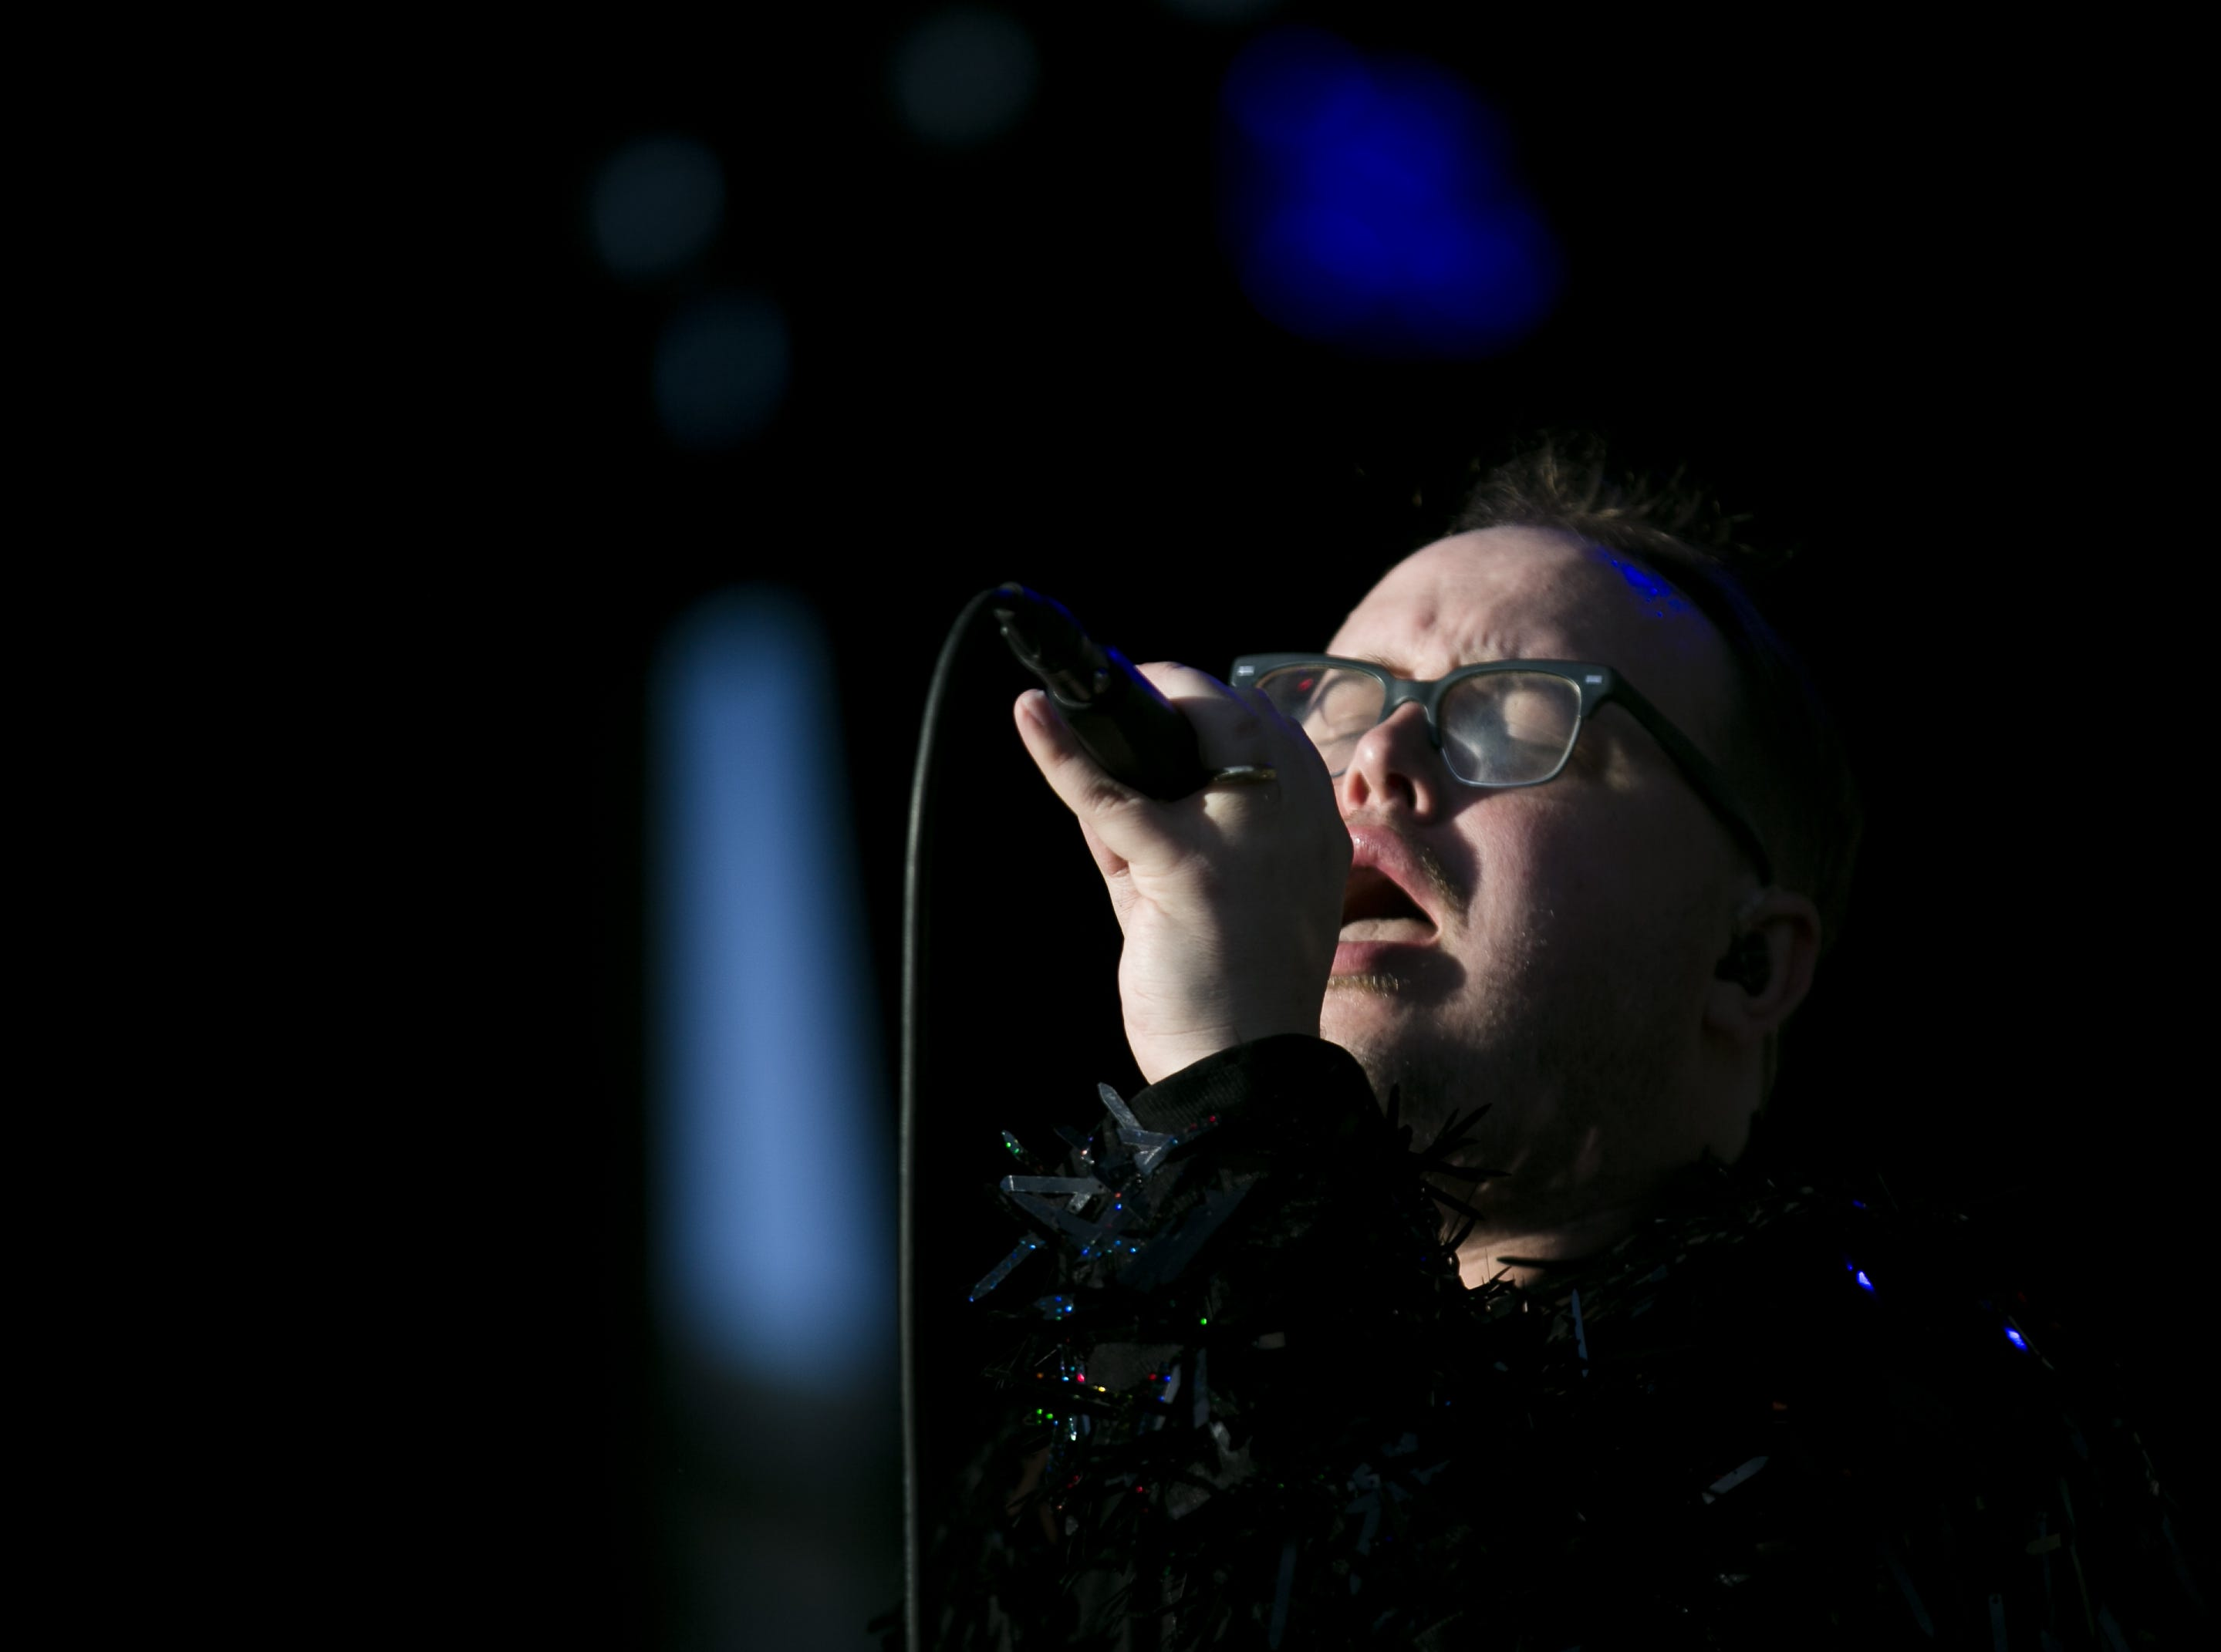 St. Paul and the Broken Bones perform at the Innings Festival at Tempe Beach Park on March 3, 2019.